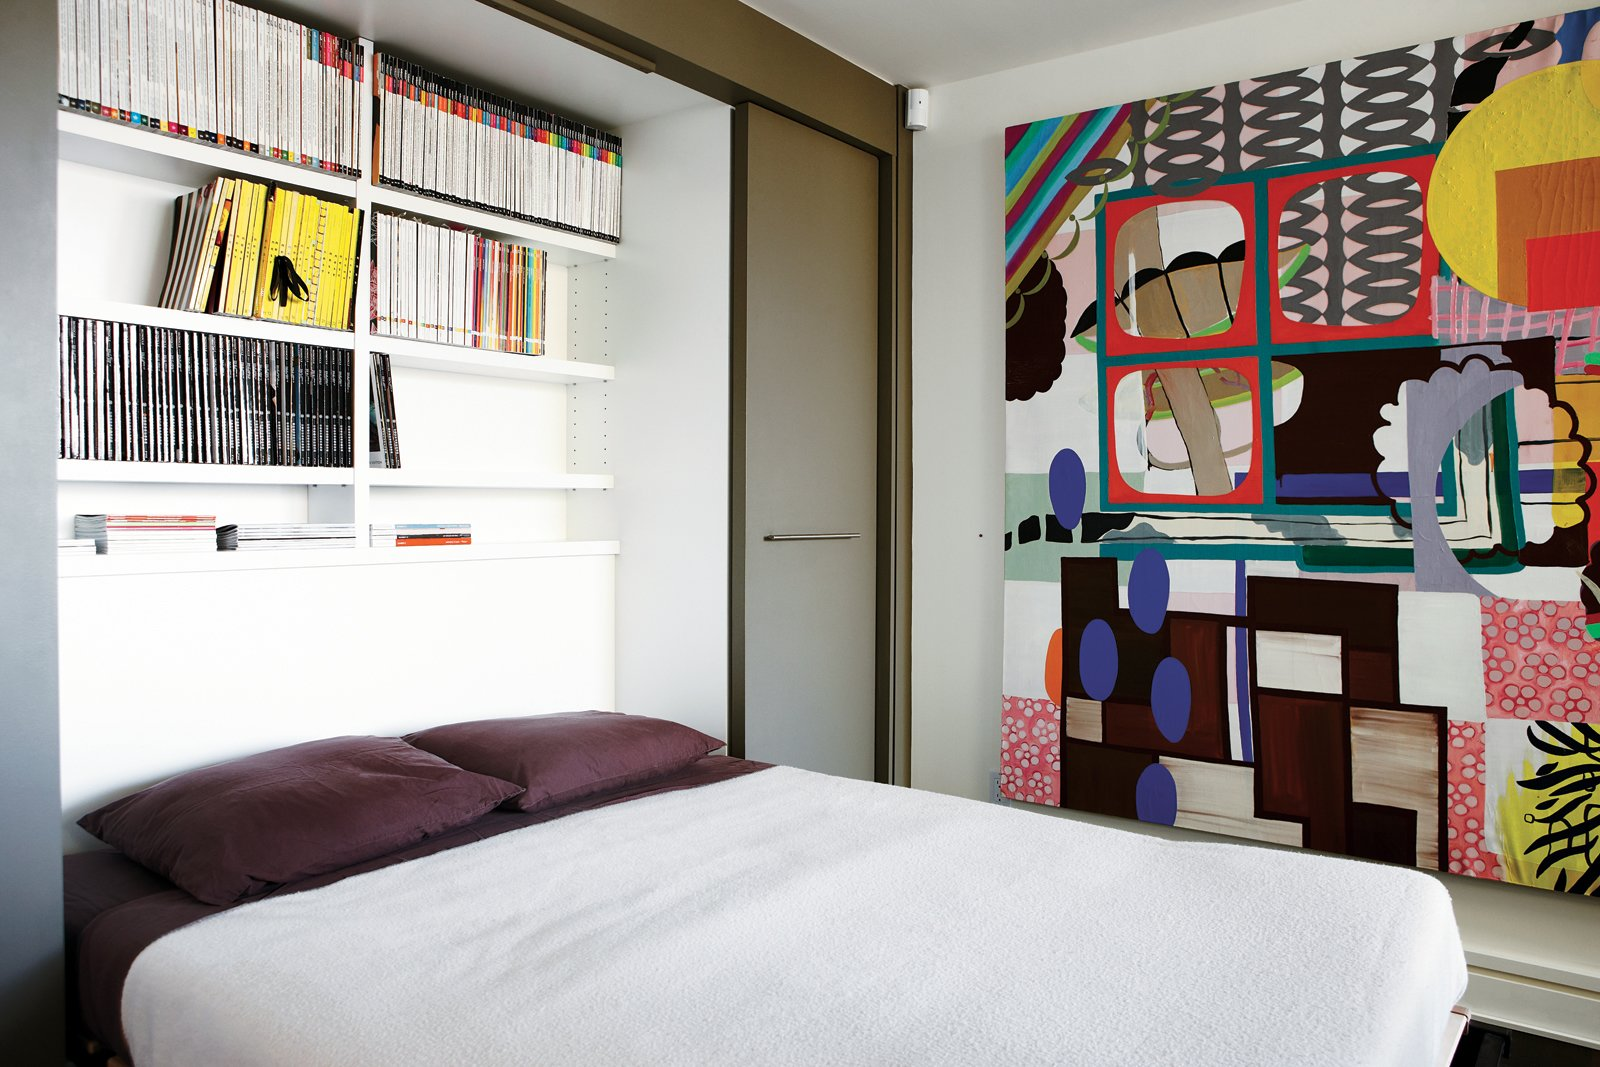 Montague's office doubles as a guest room thanks to a Murphy bed that folds out to reveal shelves stocked with design magazines. The painting is Untitled (Corner Rainbow) by Elizabeth McIntosh.  Bedrooms by Dwell from Party-Friendly Apartment in Toronto